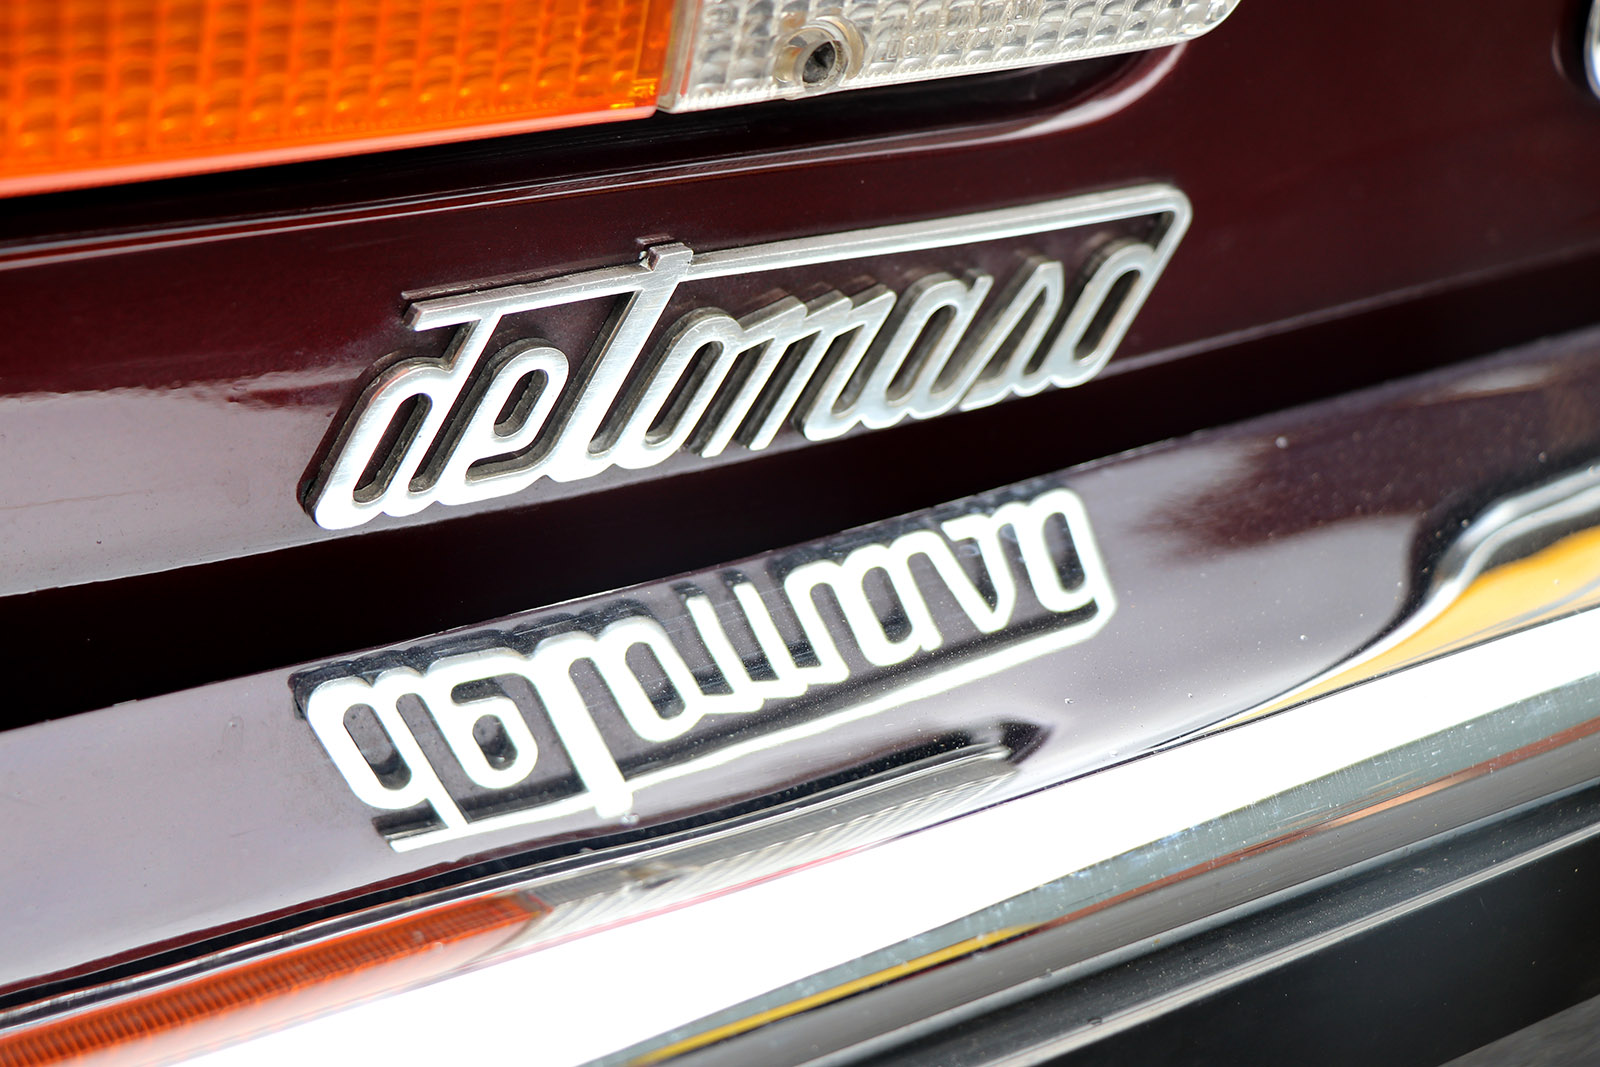 1982 series 2 burgundy deauville de tomaso badge web.jpg